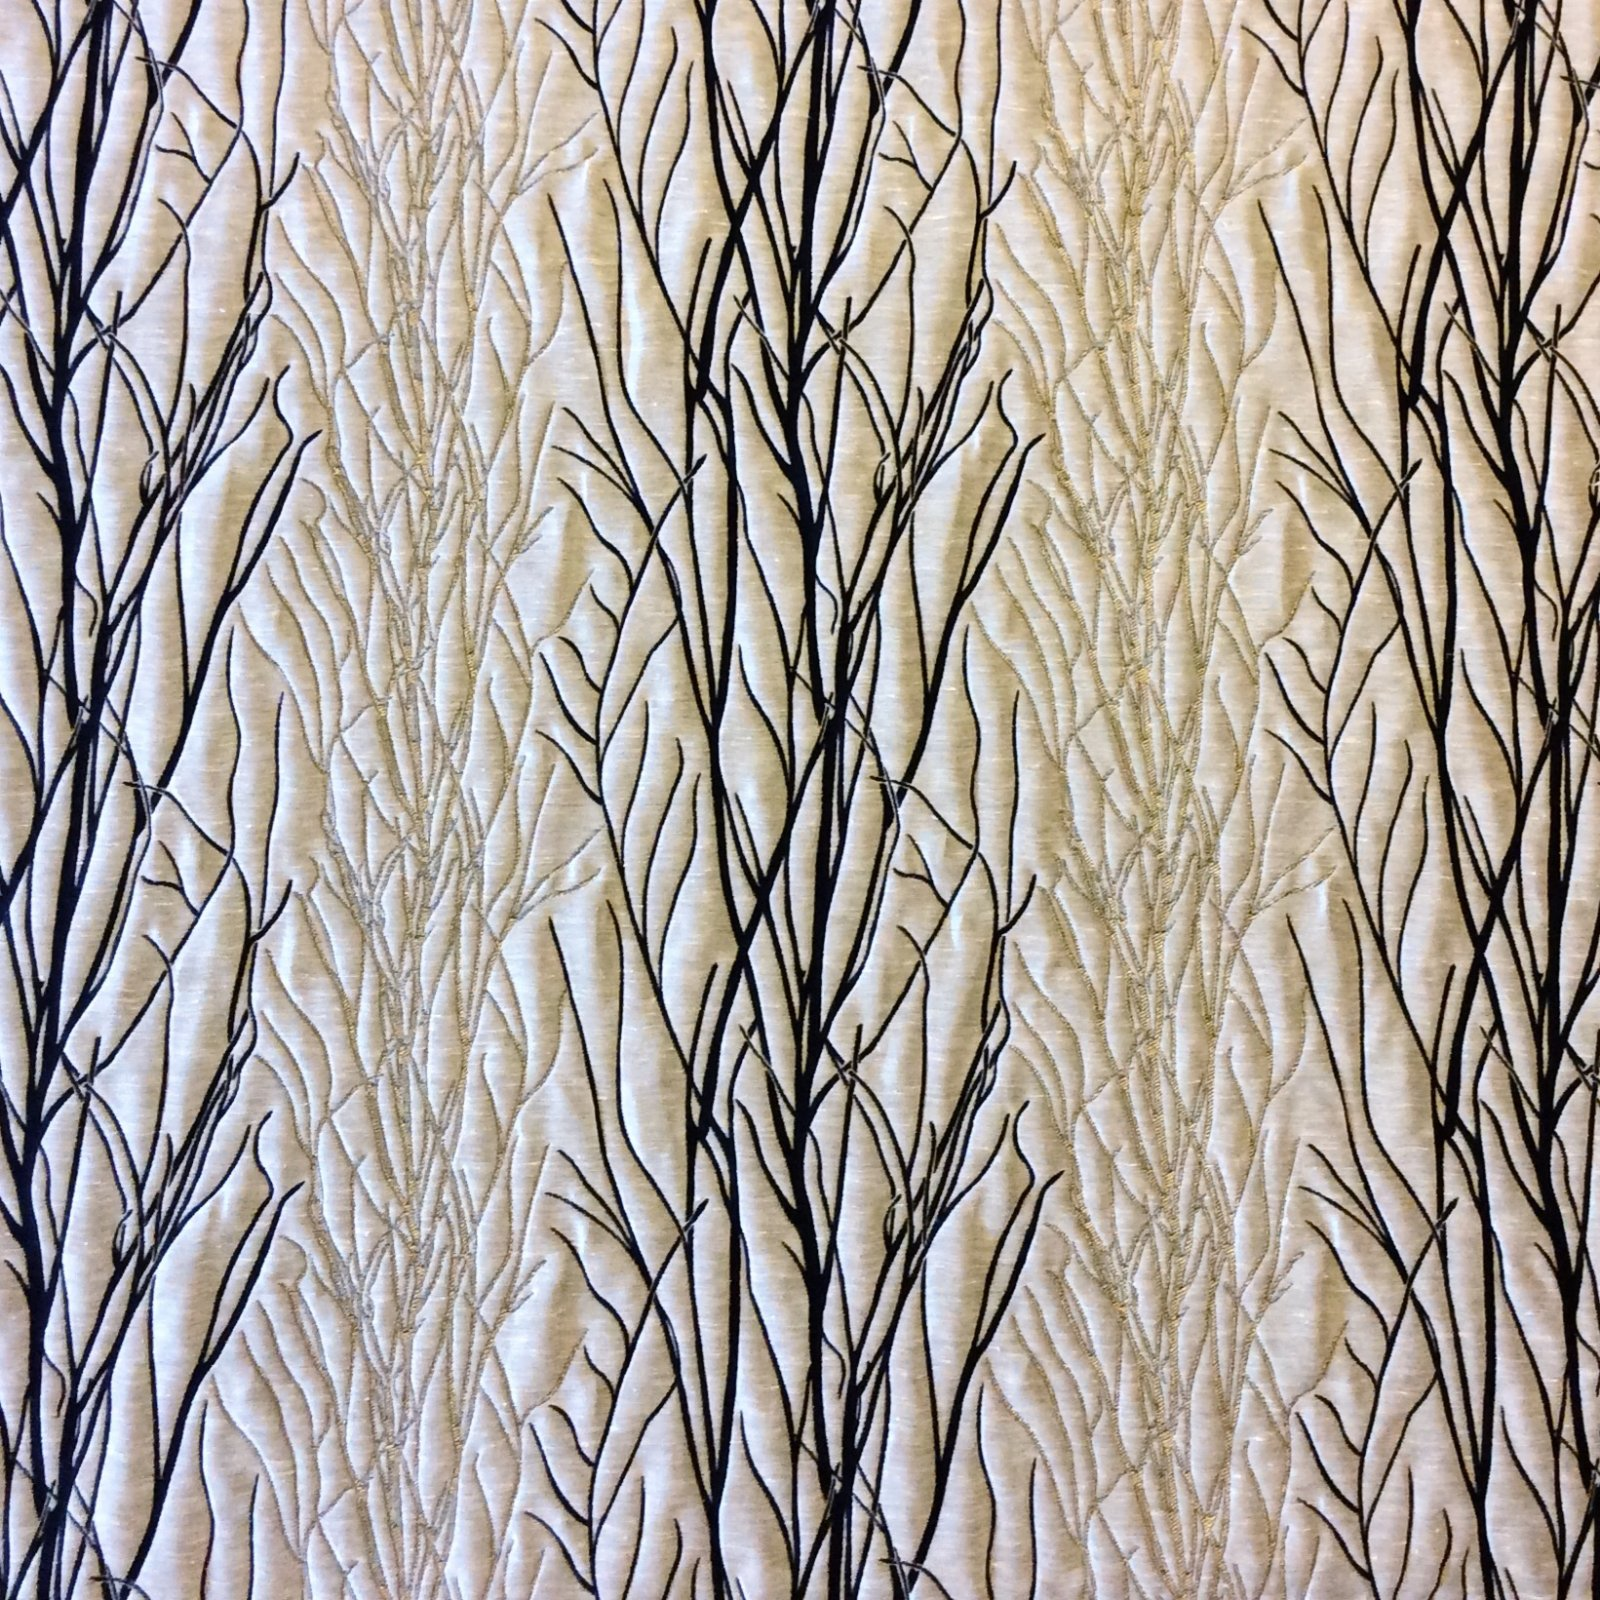 Fabric tree pattern - Birch Forest Heavy Weight Tapestry Taupe Espresso Tree Branch Upholstery Fabric Drapery Fabric Hm100